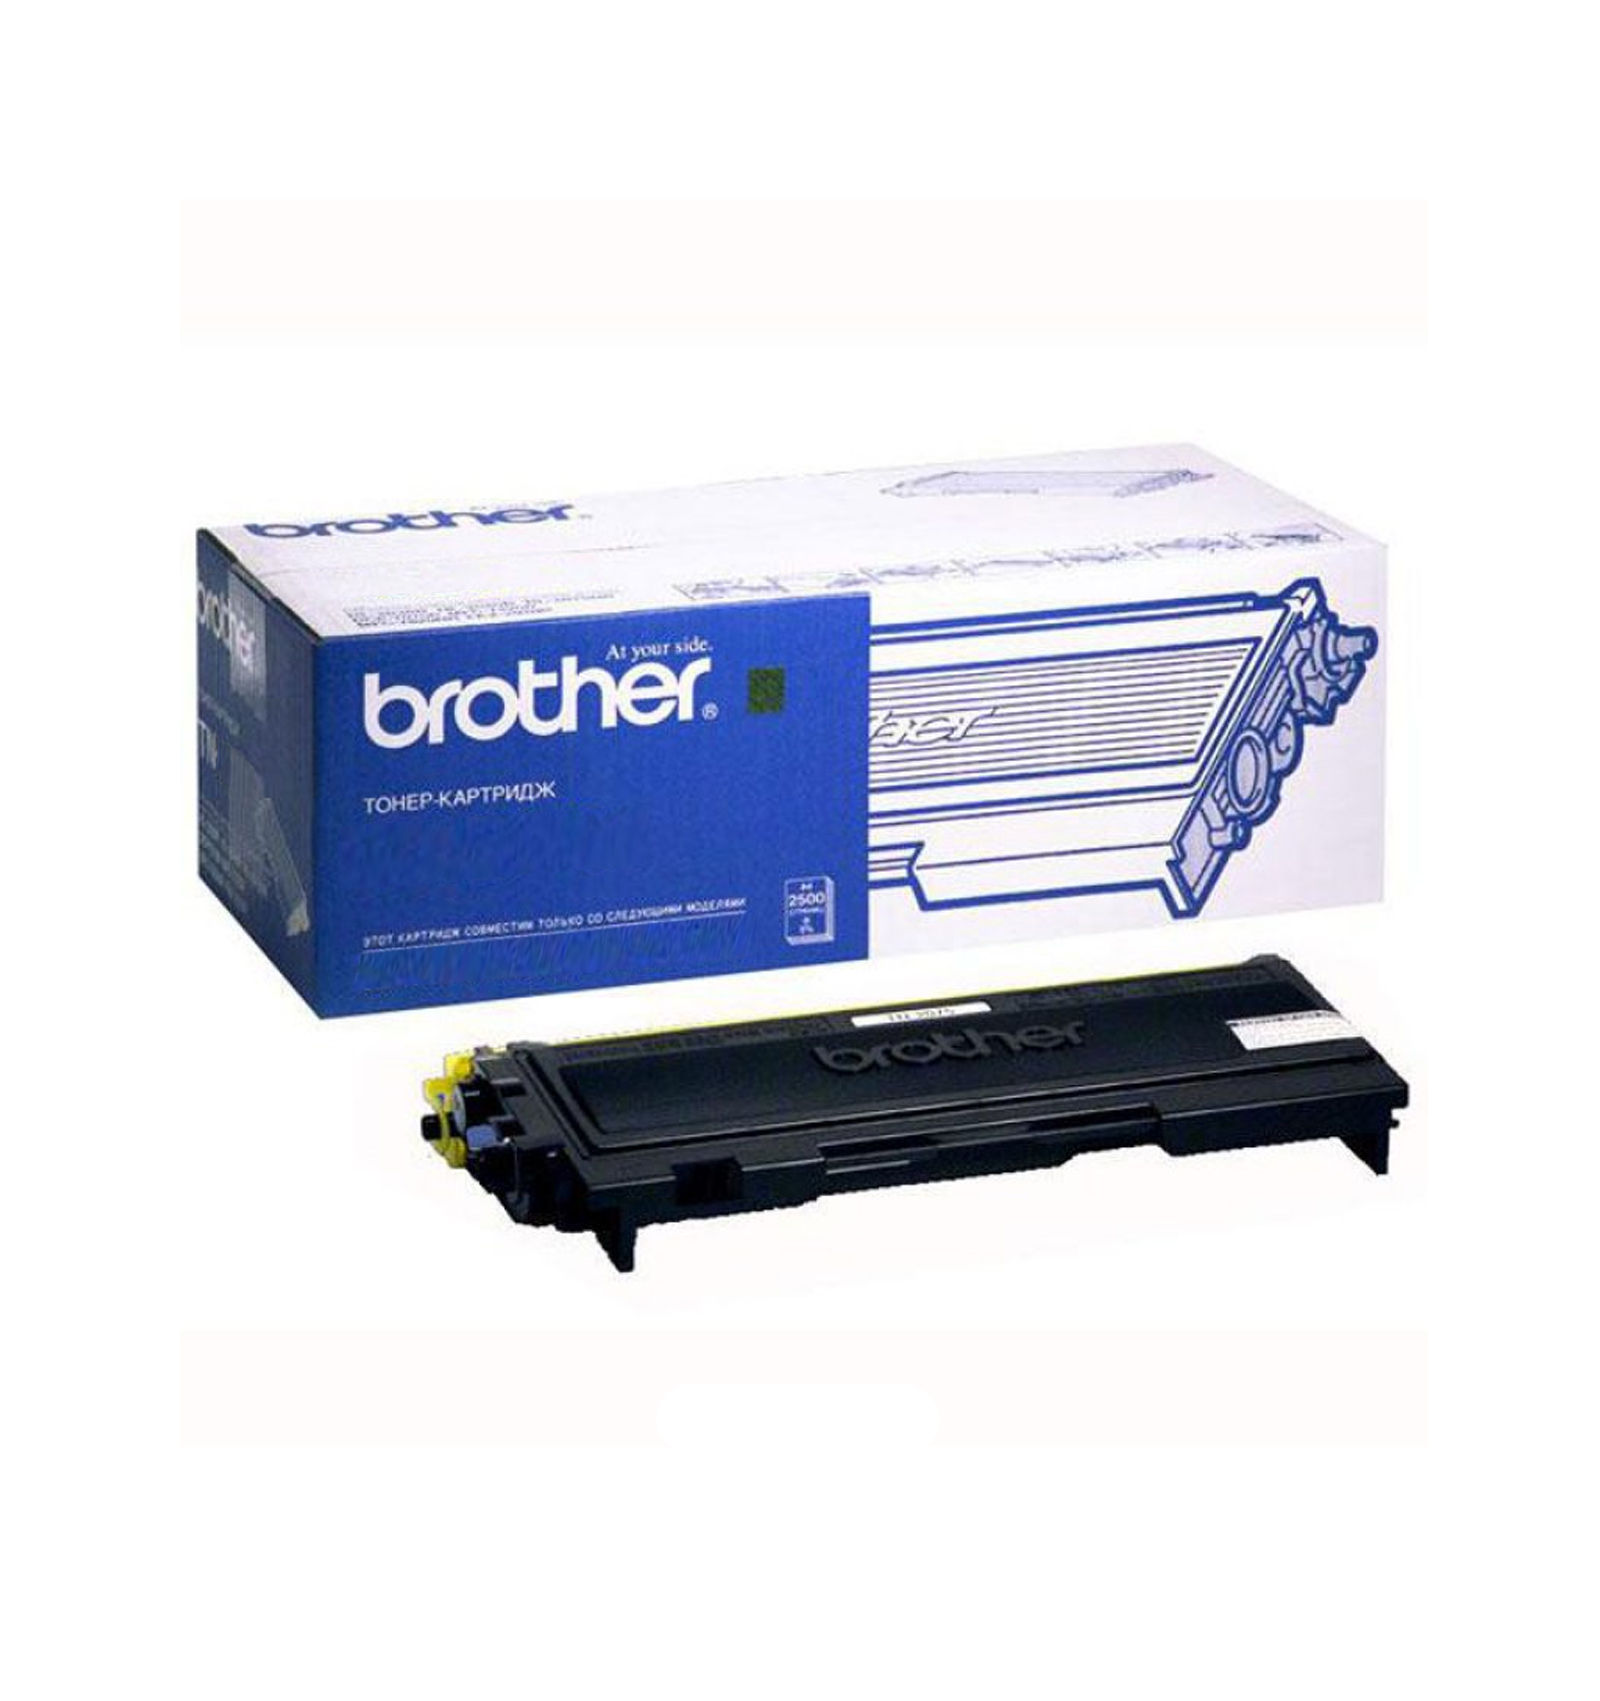 Brother tn-2335 для HLL2300/2340/2360/2365/DCPL2500/2520/2540/2560/MFCL2700/2720/2740